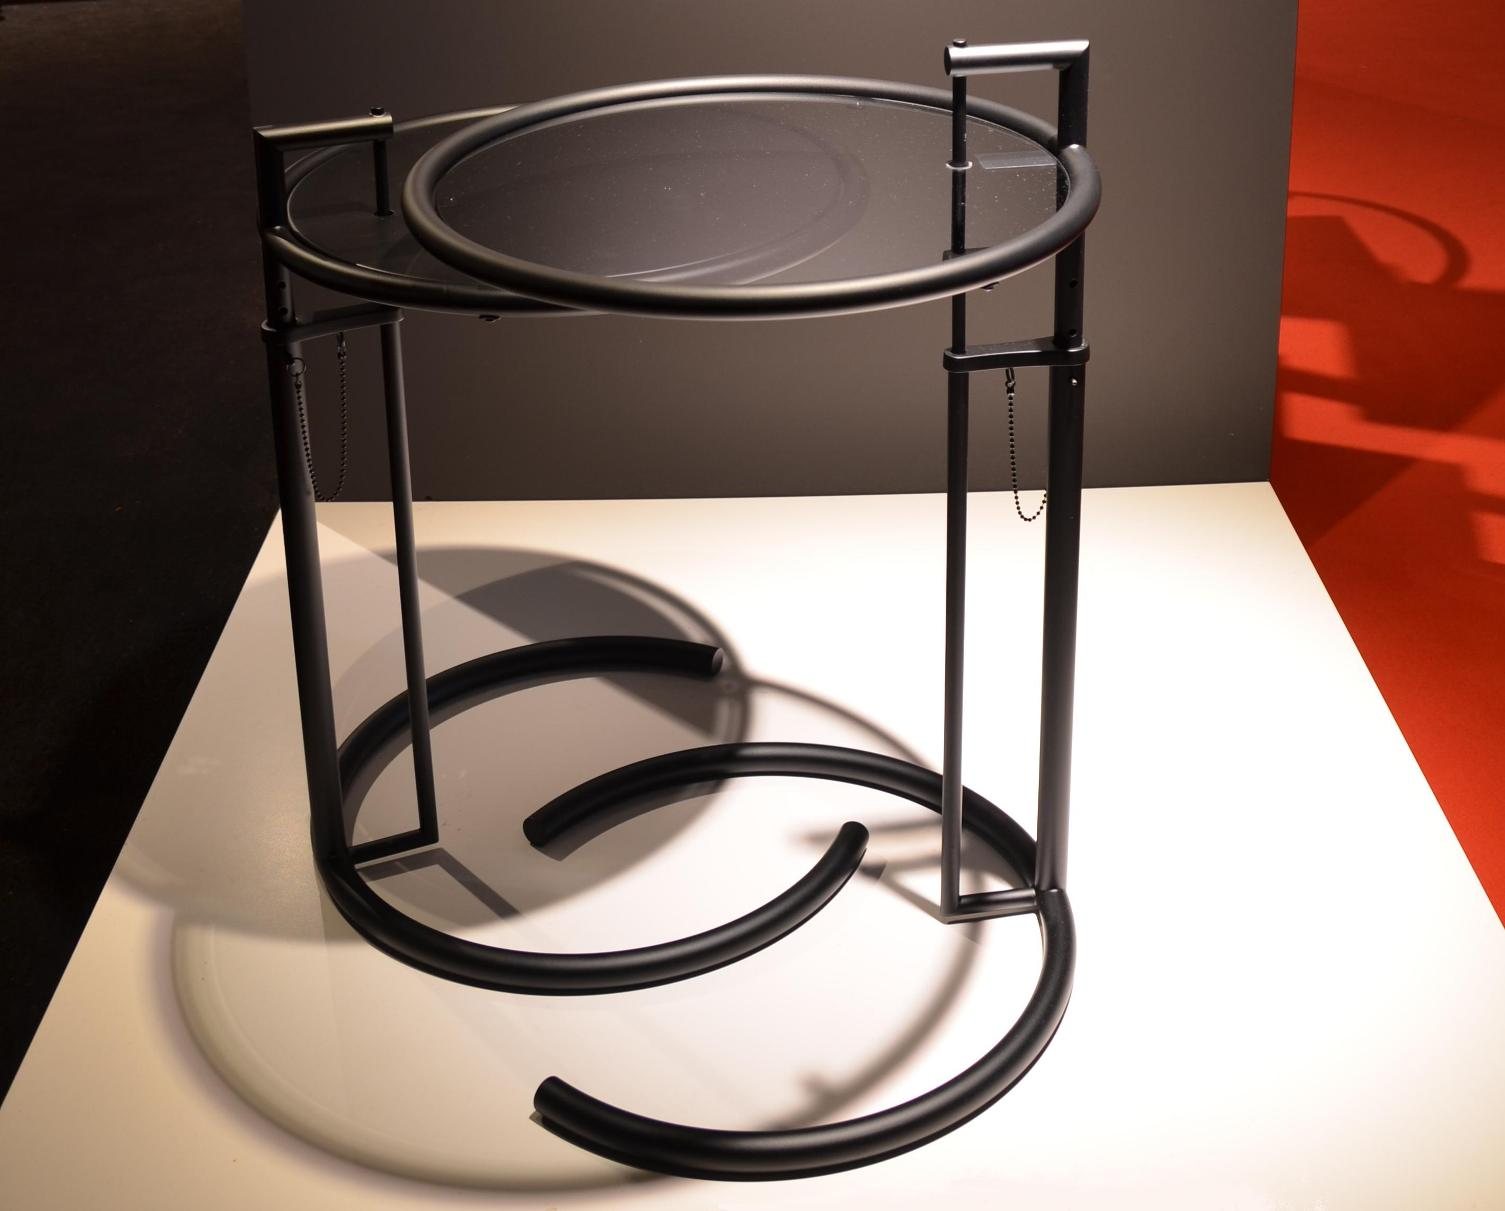 40 aram eileen gray e1027 side table back in black new edition isaloni salone del mobile 2015 milan targi meblowe w mediolanie interior furniture light fixtures design tendencies trends review